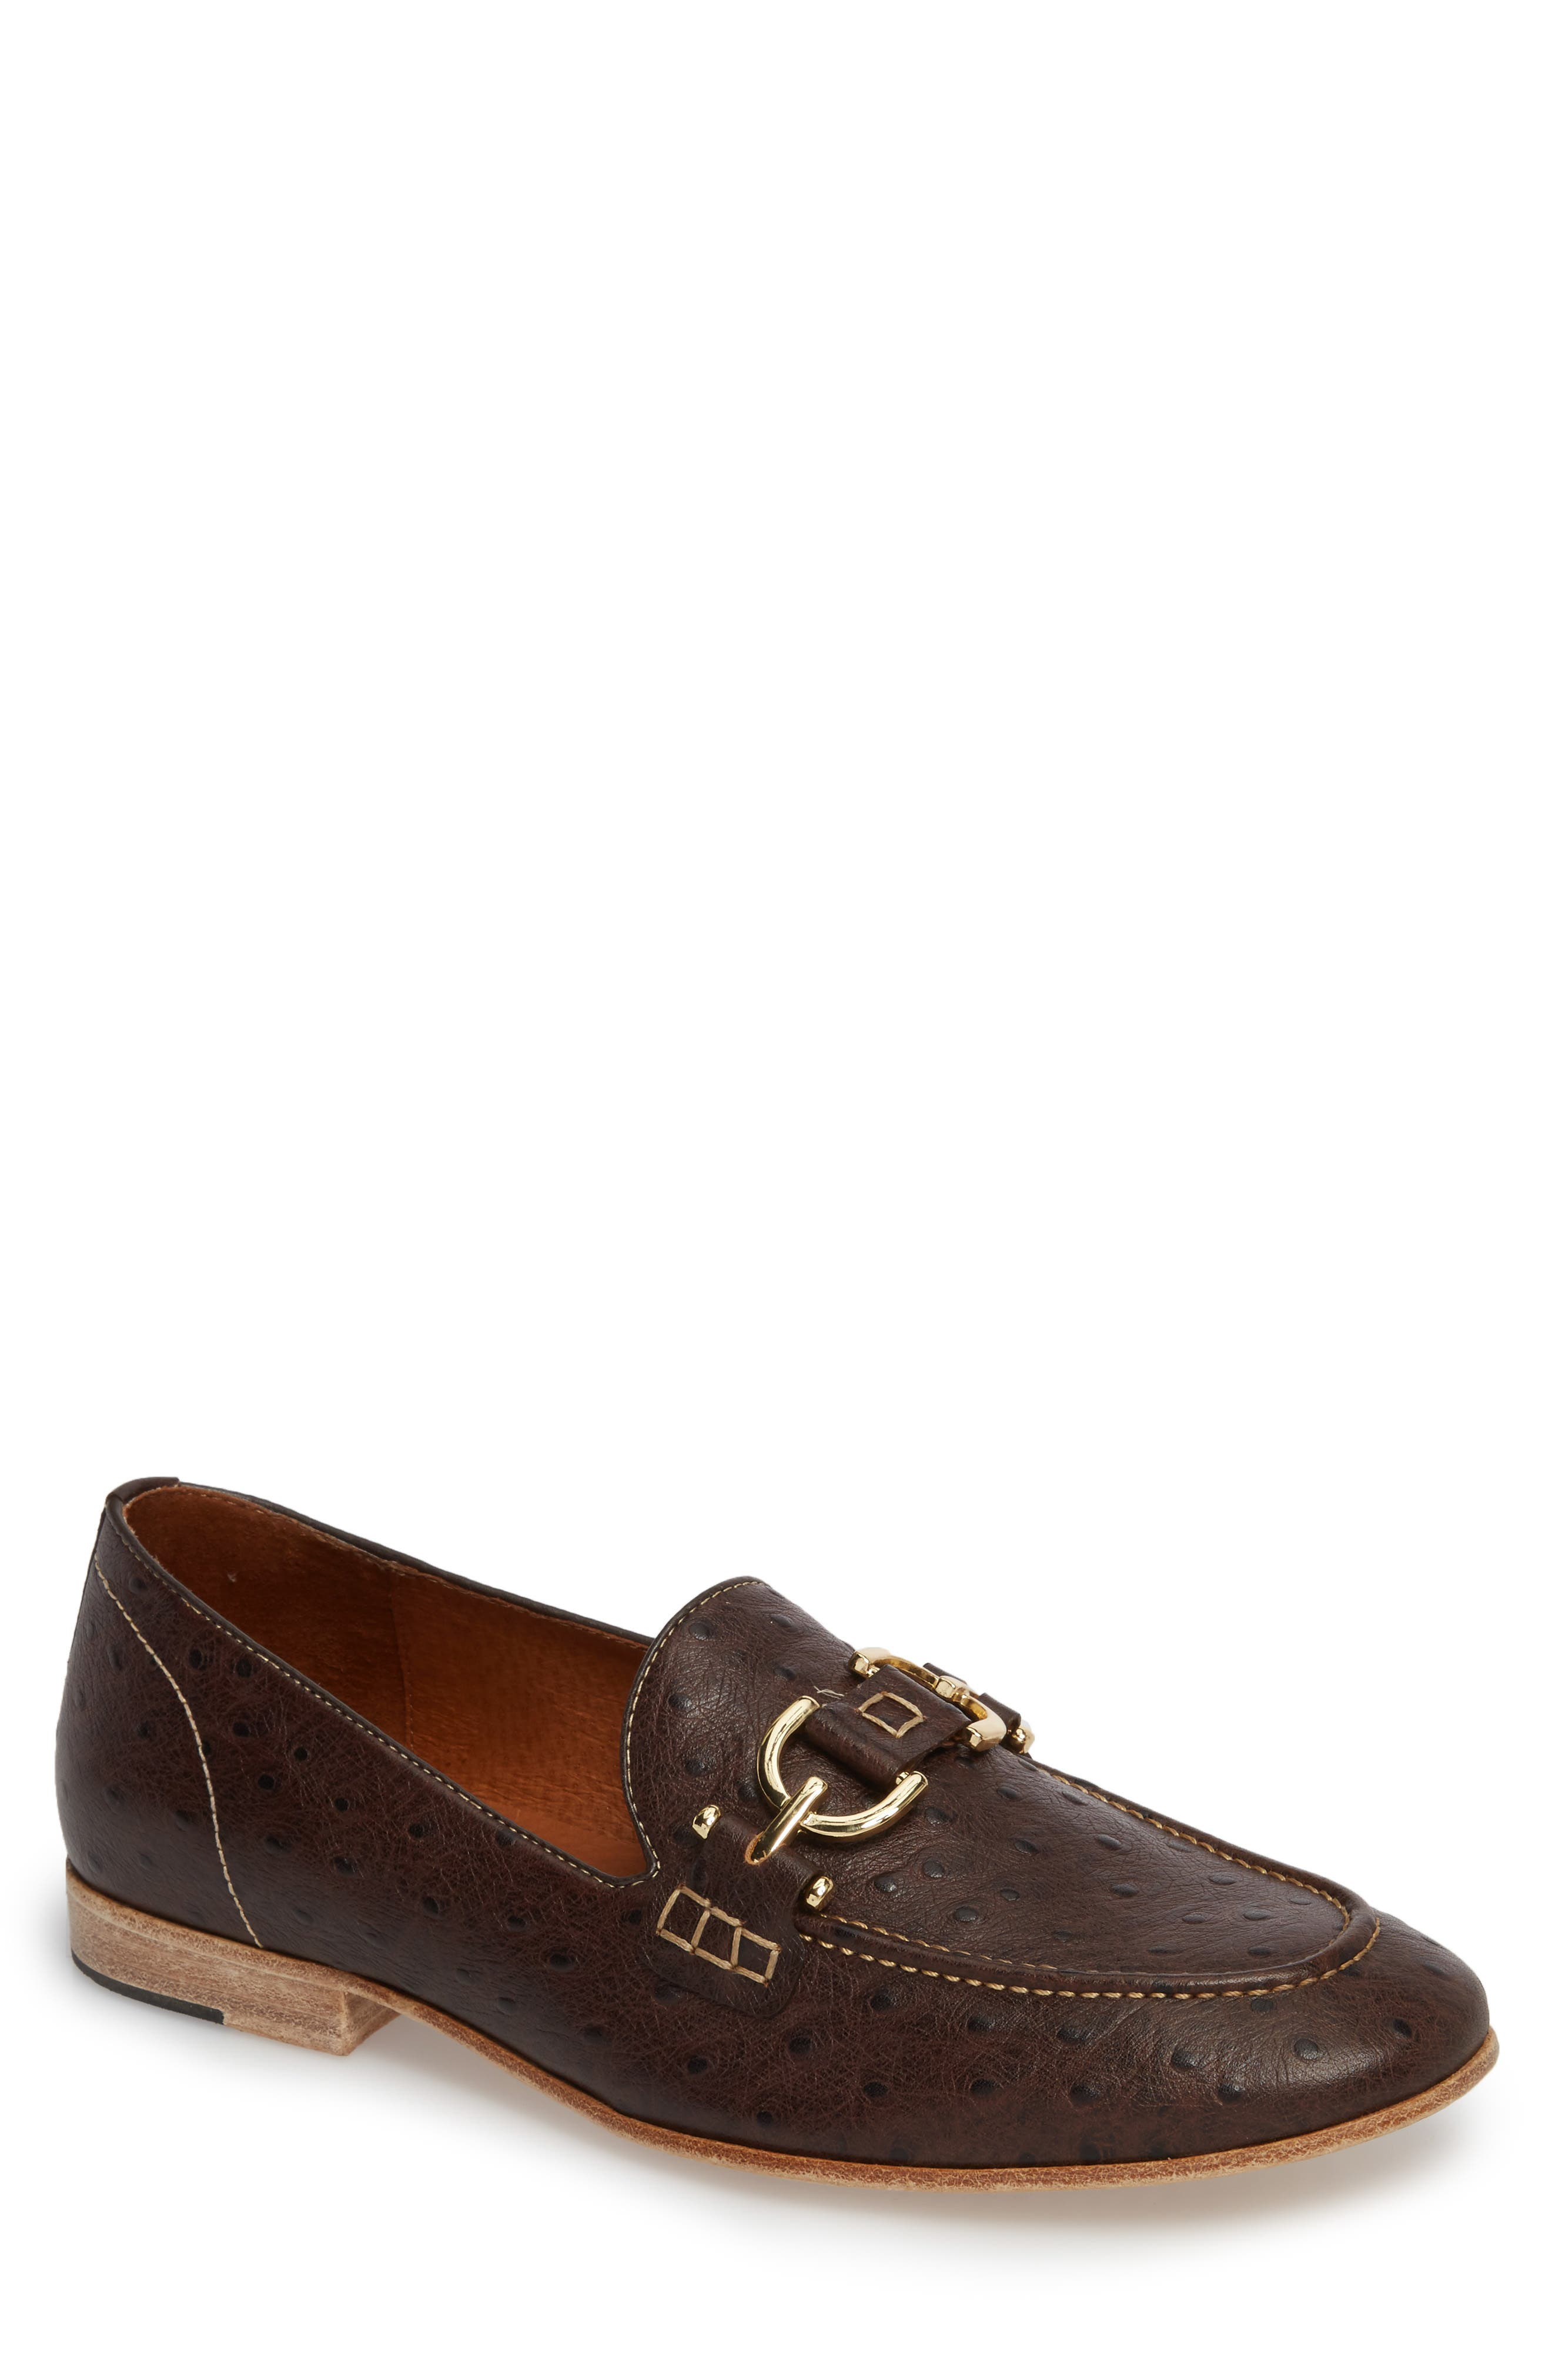 Moritz Apron Toe Bit Loafer,                             Main thumbnail 1, color,                             200